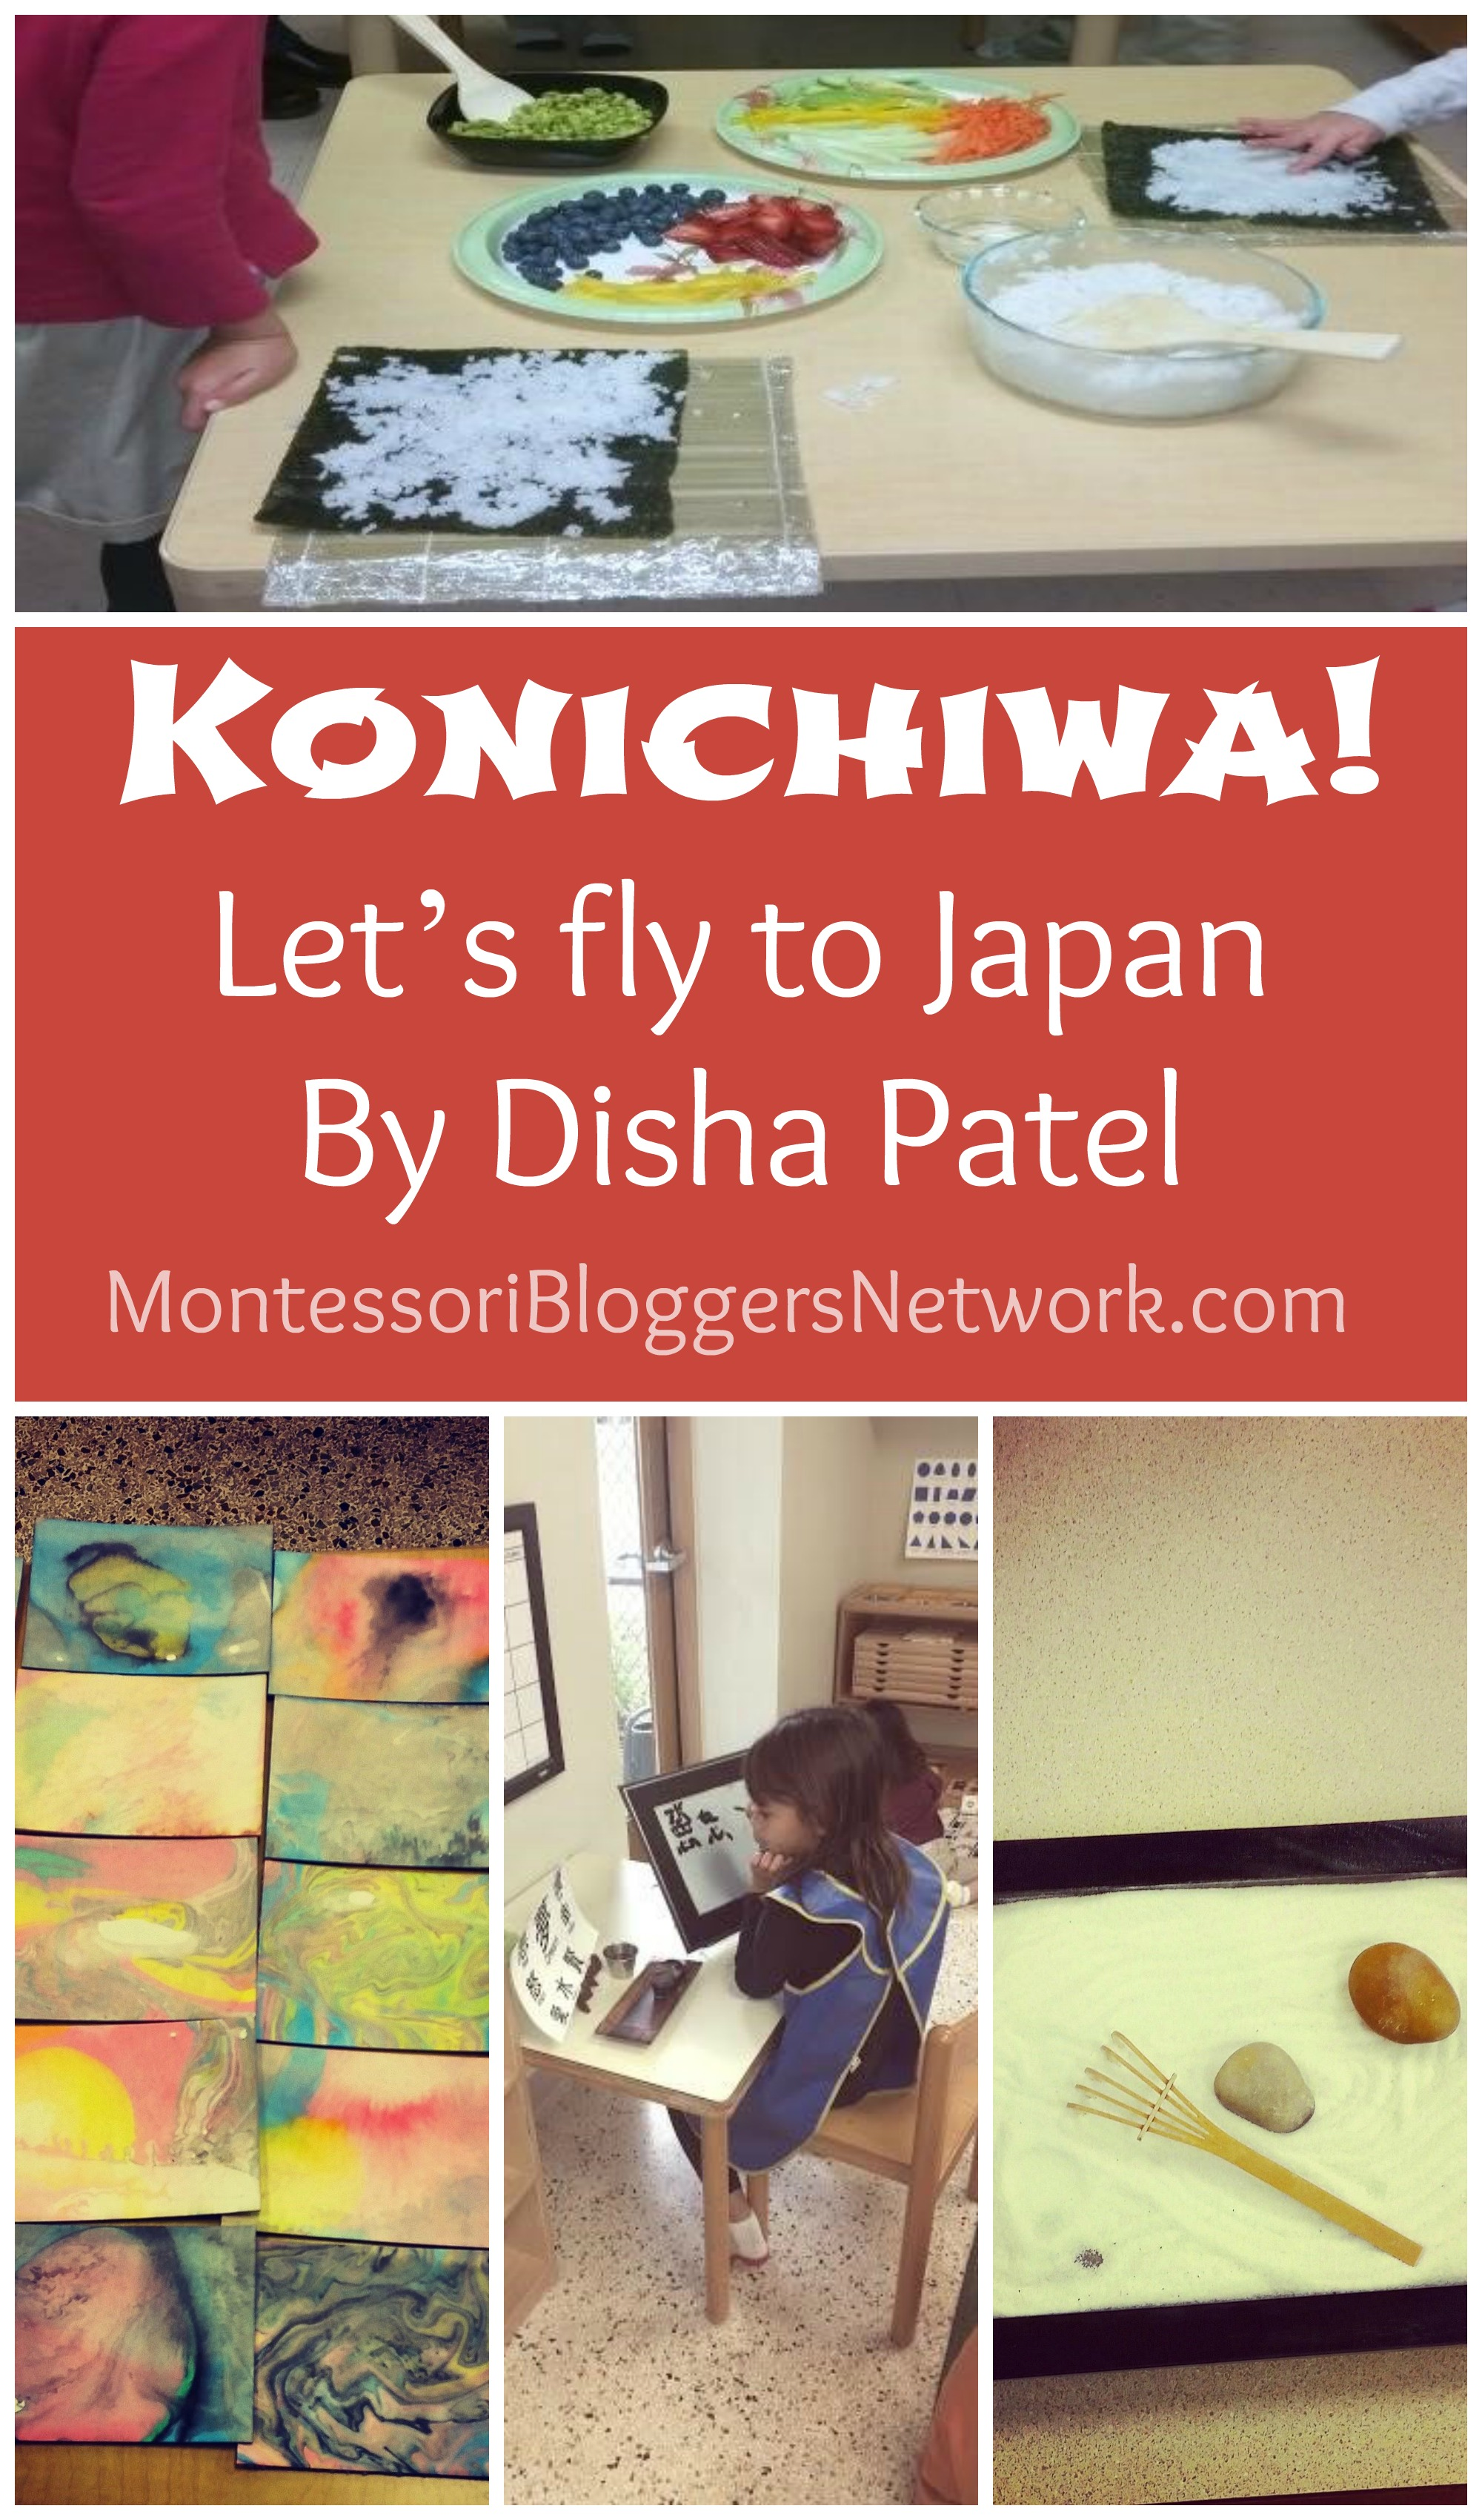 Konichiwa! Let's fly to Japan By Disha Patel